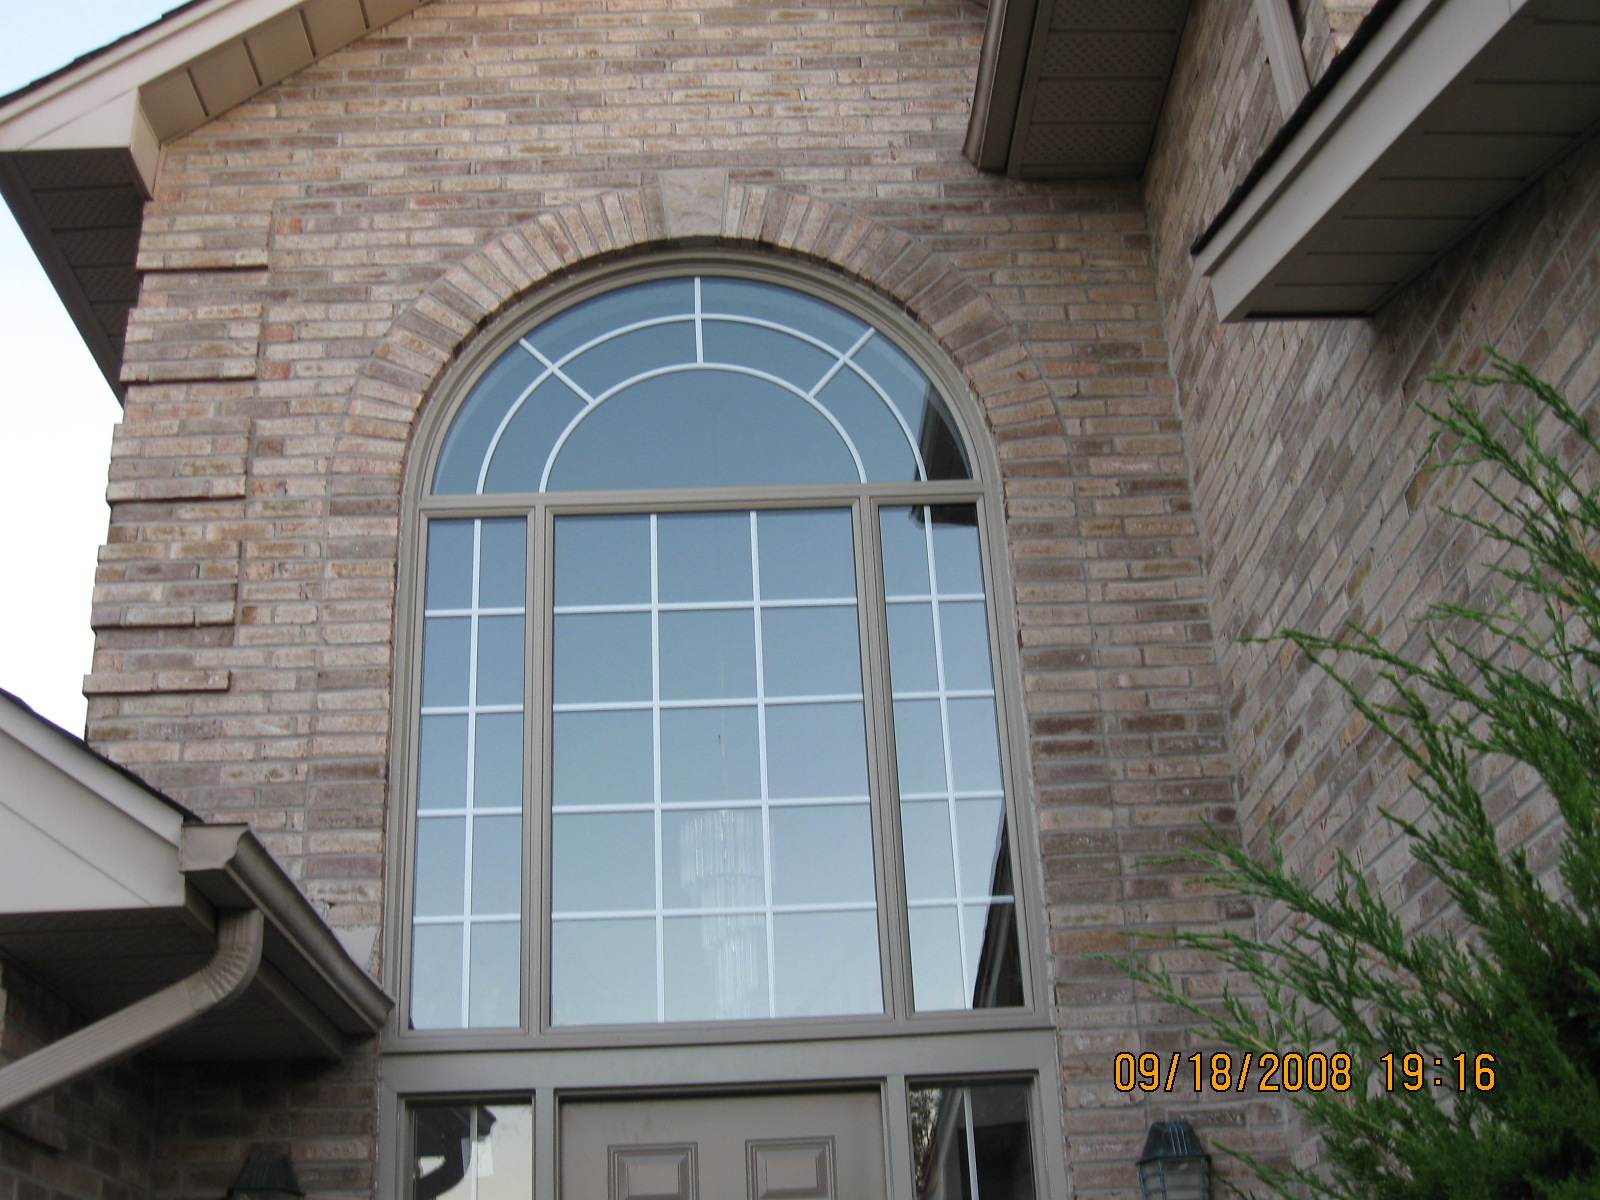 Curved window above steel door